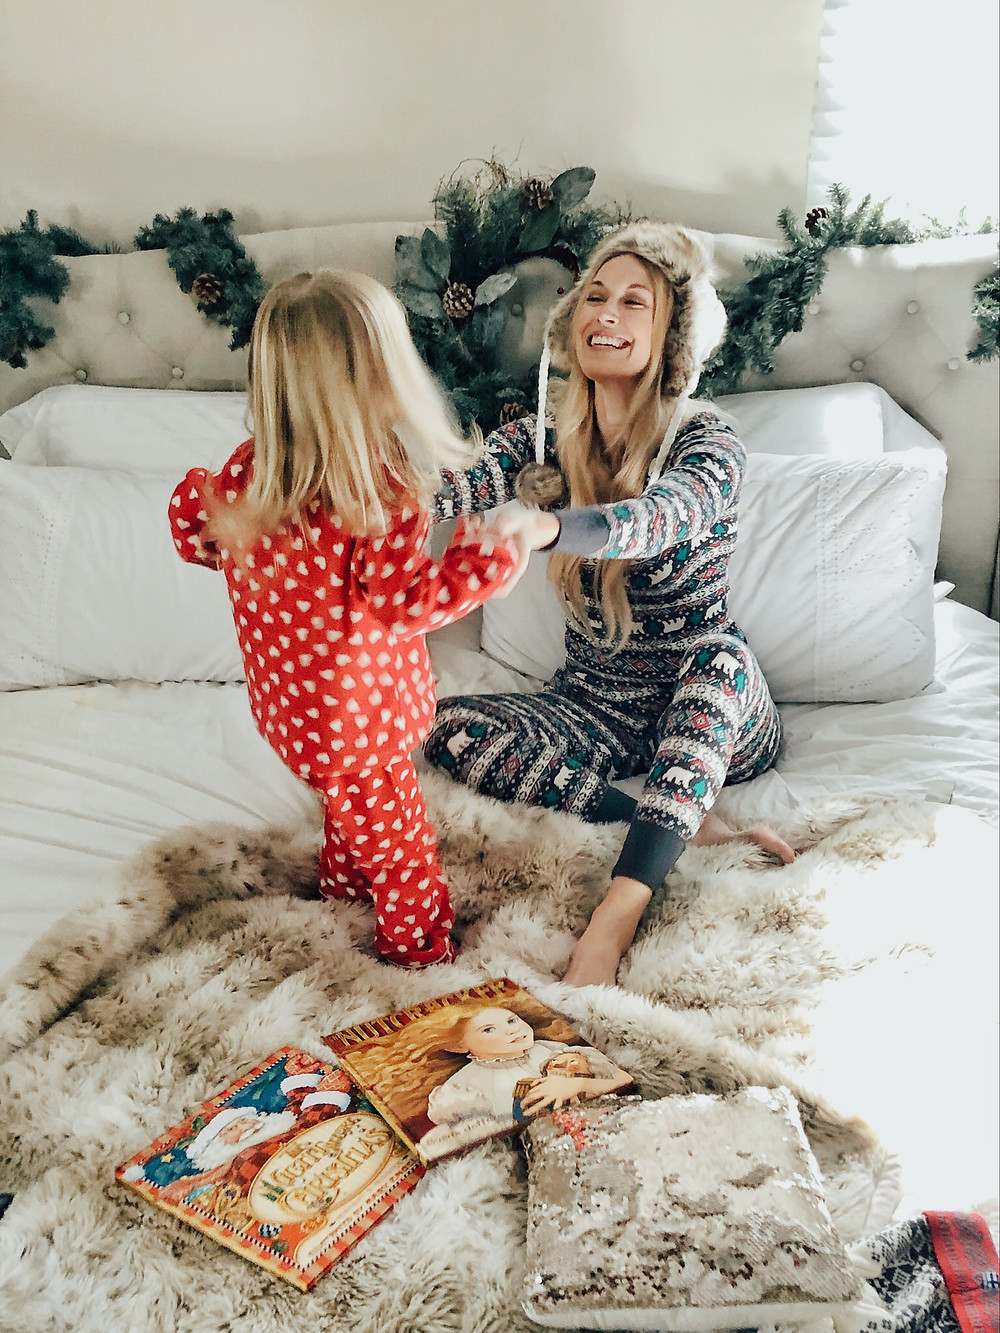 Mom and daughter dance in Christmas pajamas.